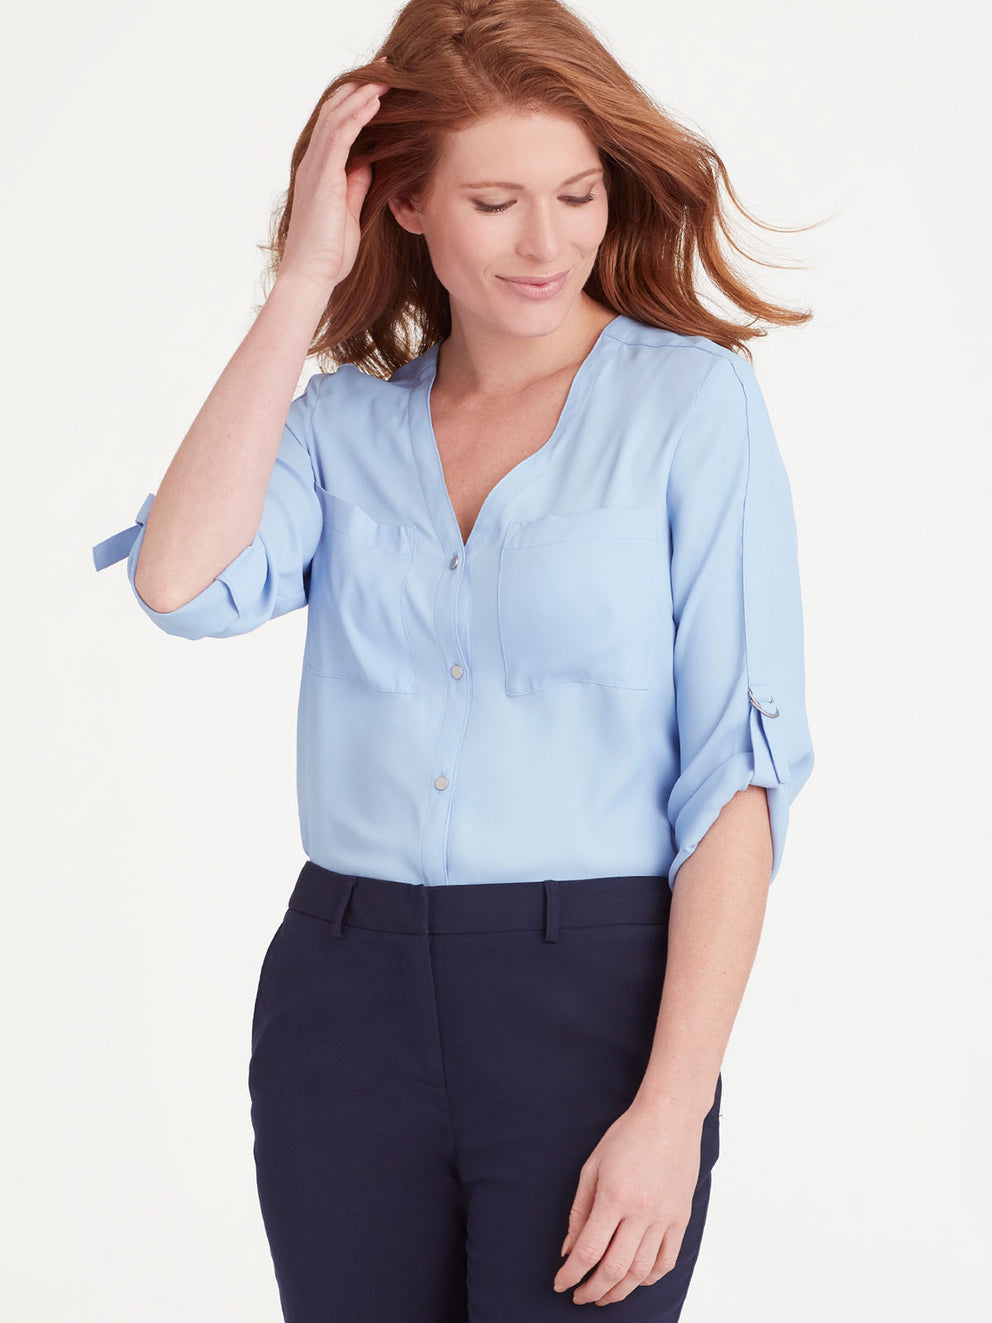 The Jones New York Classic Tab Sleeve Top in color Light Wedgewood - Image Position 2